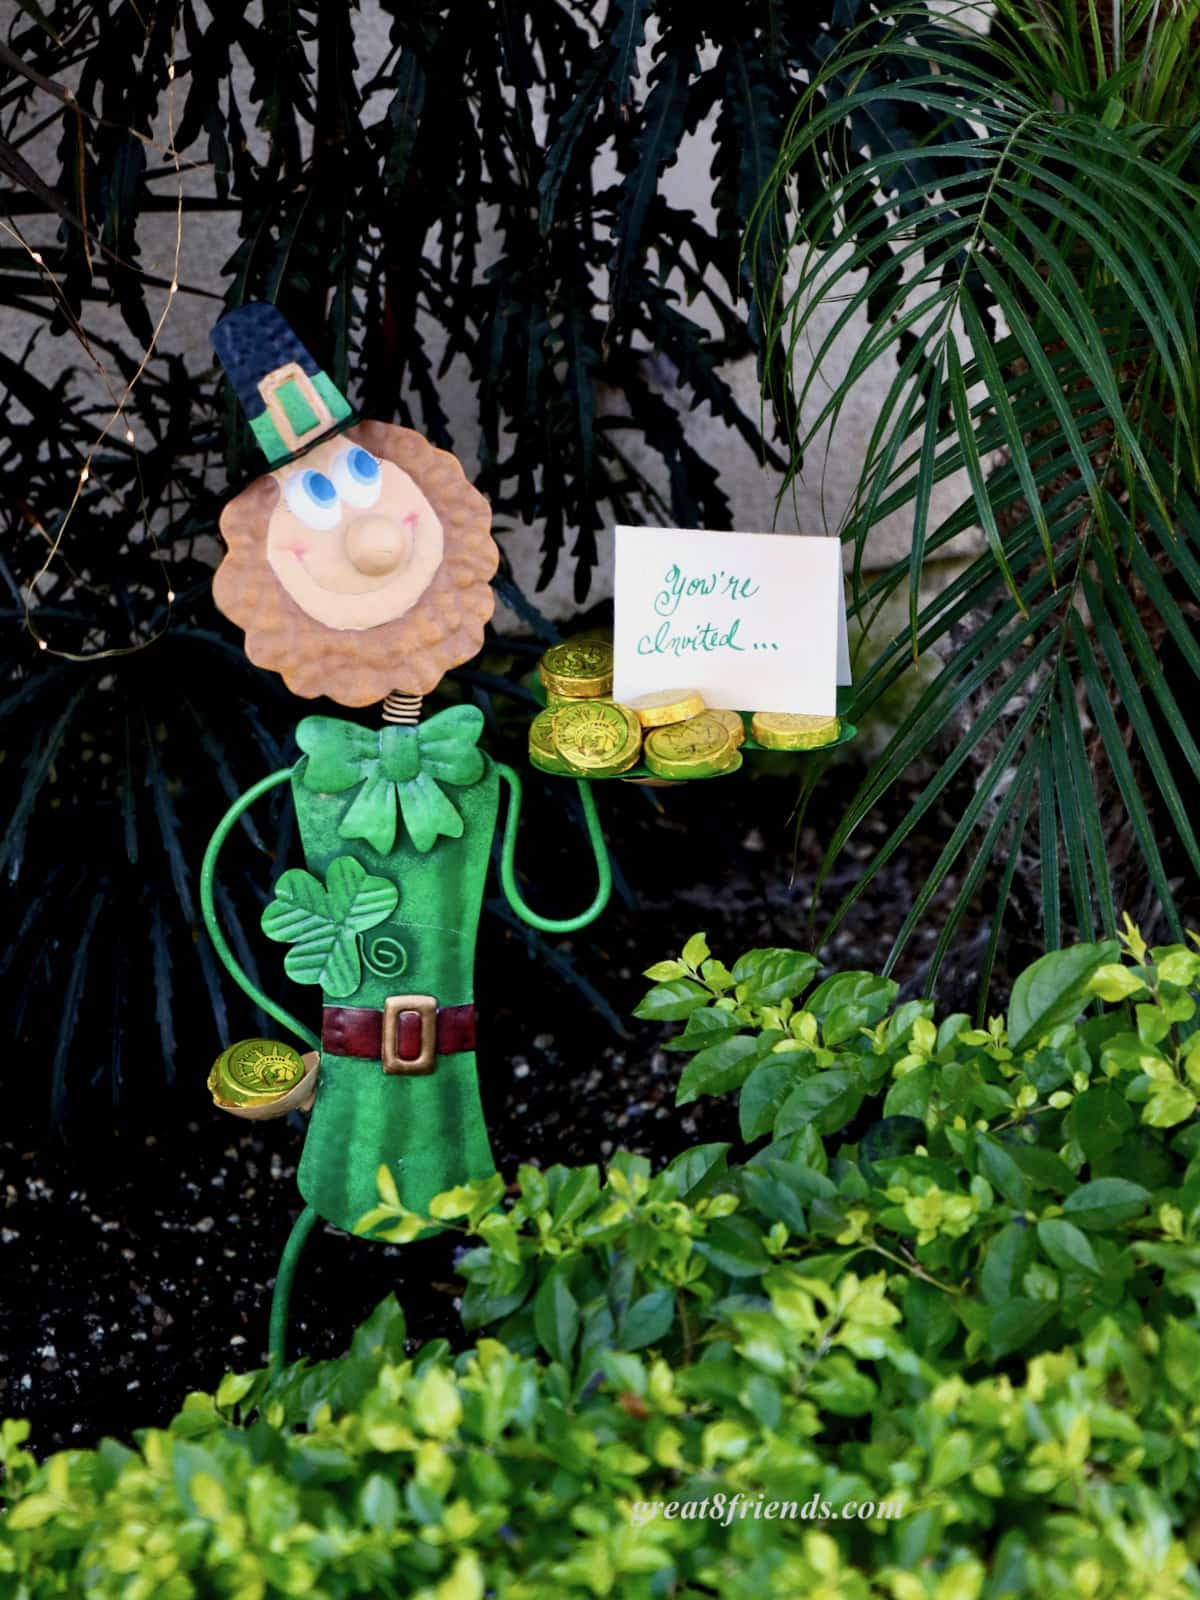 Metal garden leprechaun holding a small tray with gold foil chocolate coins and an invitation.